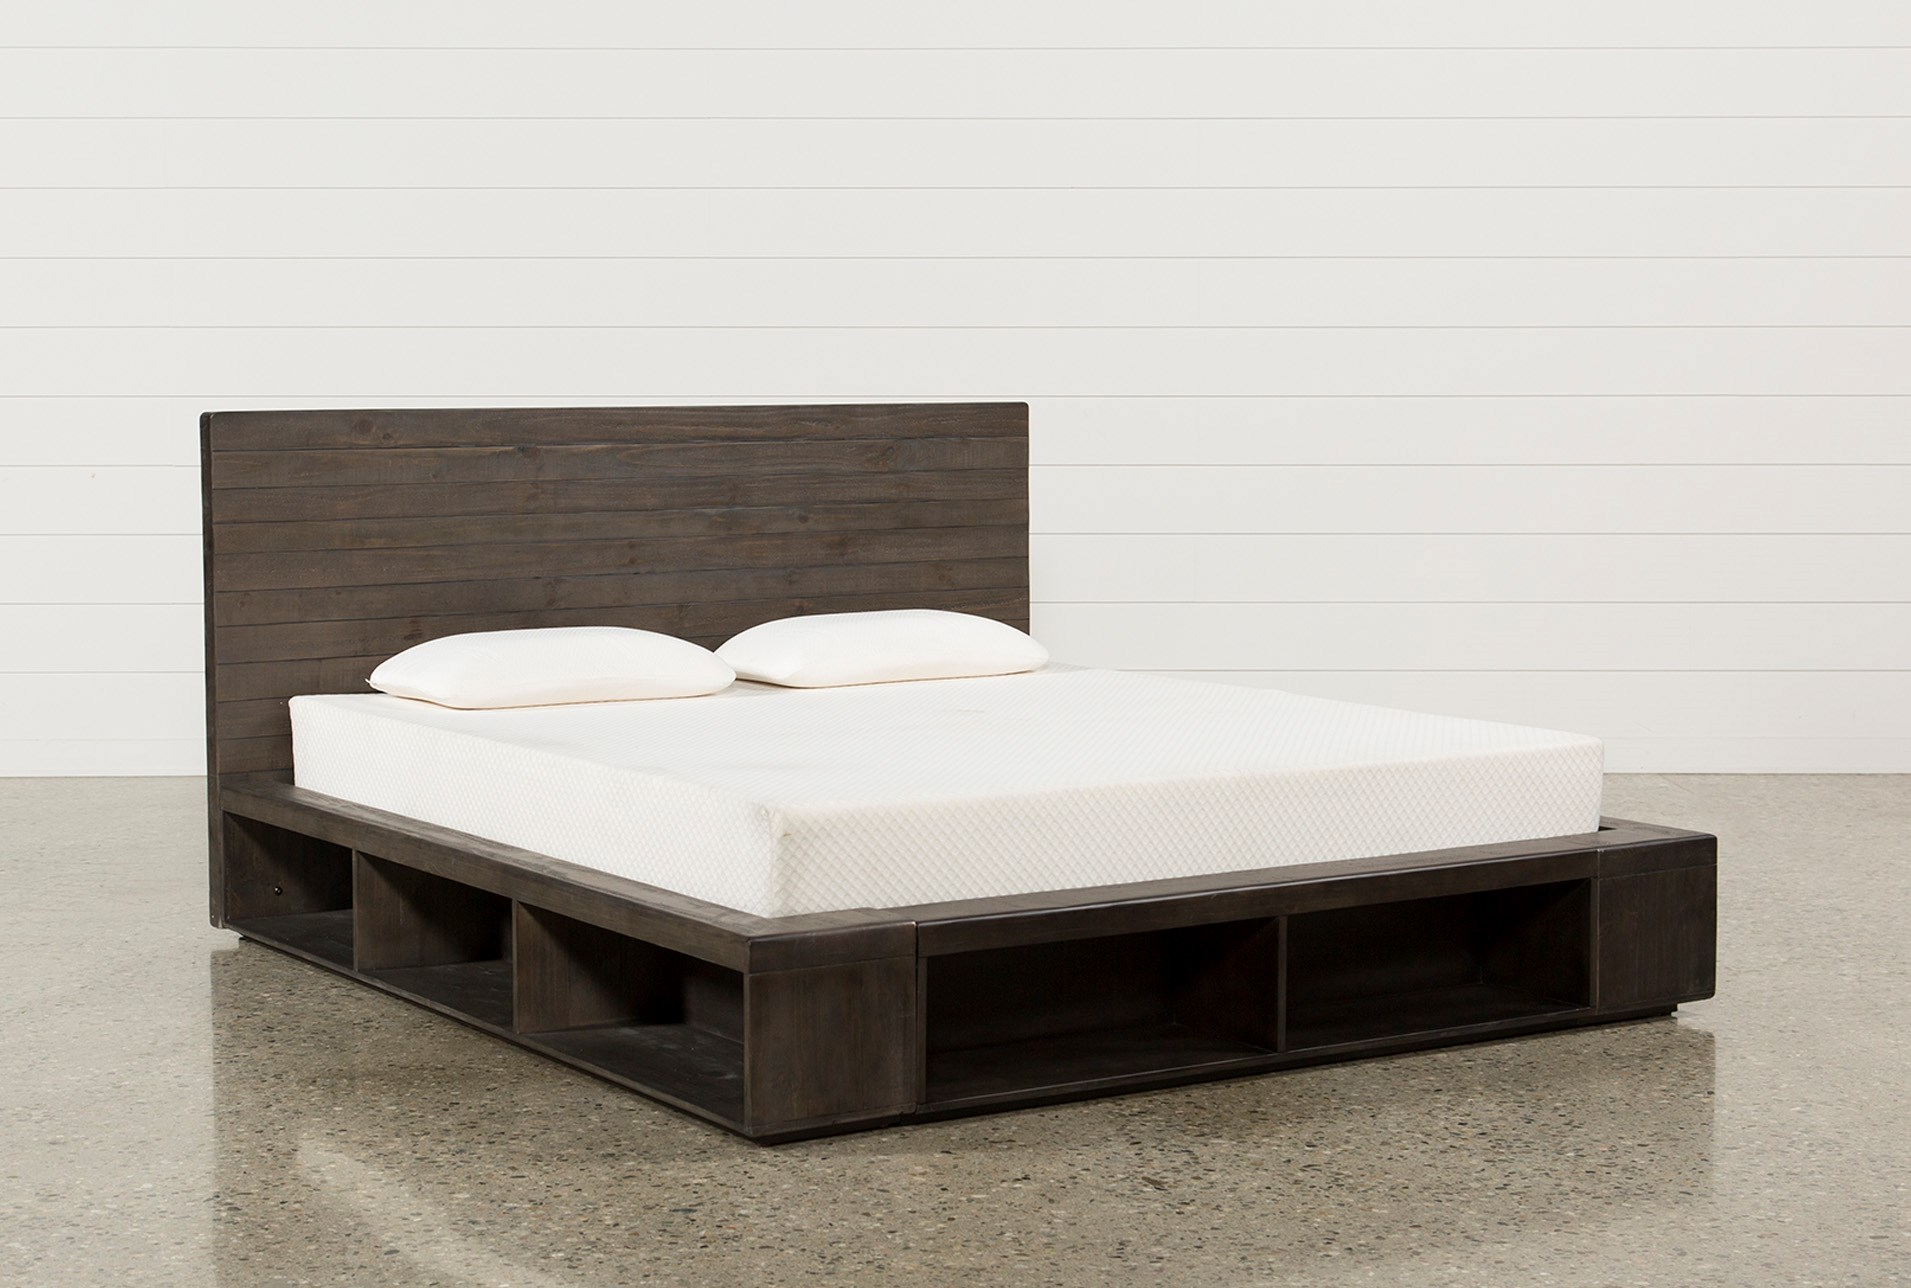 California King Bed To Dylan California King Platform Bed qty 1 Has Been Successfully Added To Your Cart Living Spaces